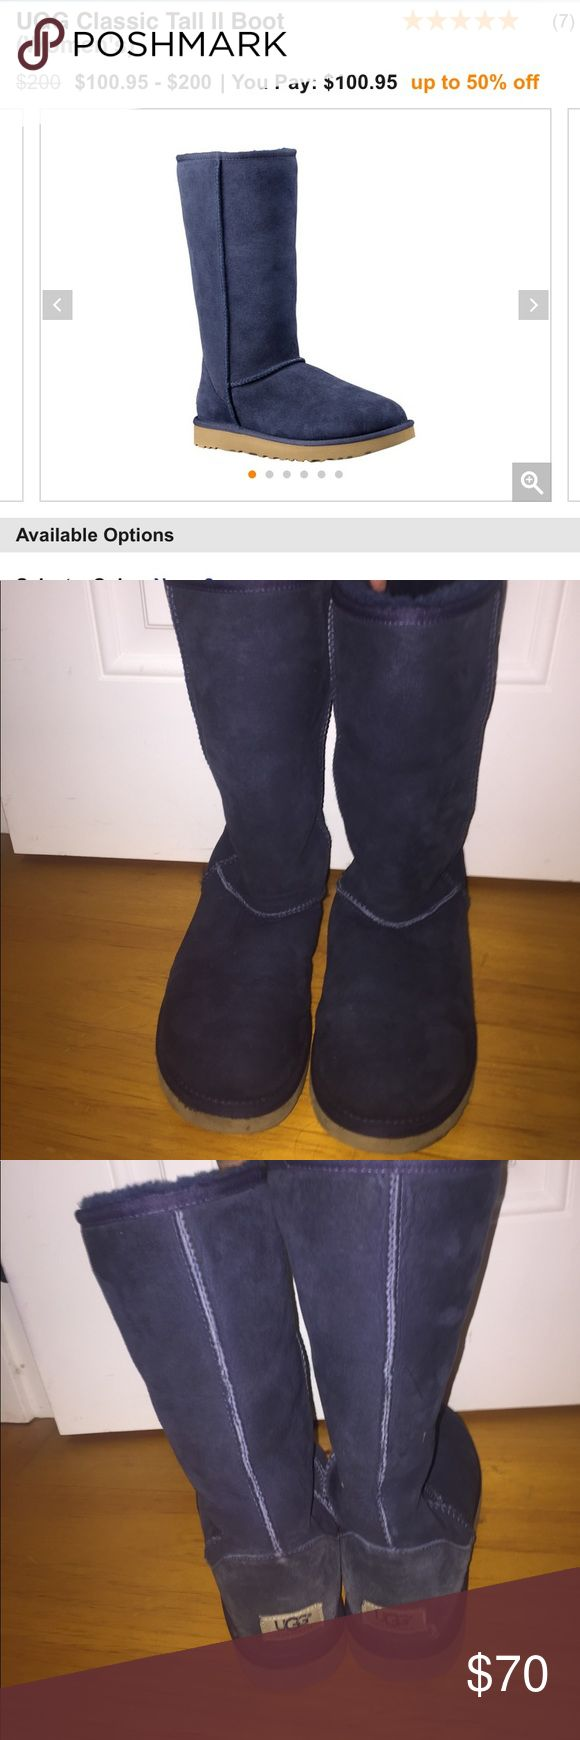 NAVY BLUE UGGS!!💙 Worn once, tall navy blue uggs! Genuine leather & genuine sheepskin. Tag says they're a size 6 but they are a size 8 I swear! UGG Shoes Winter & Rain Boots